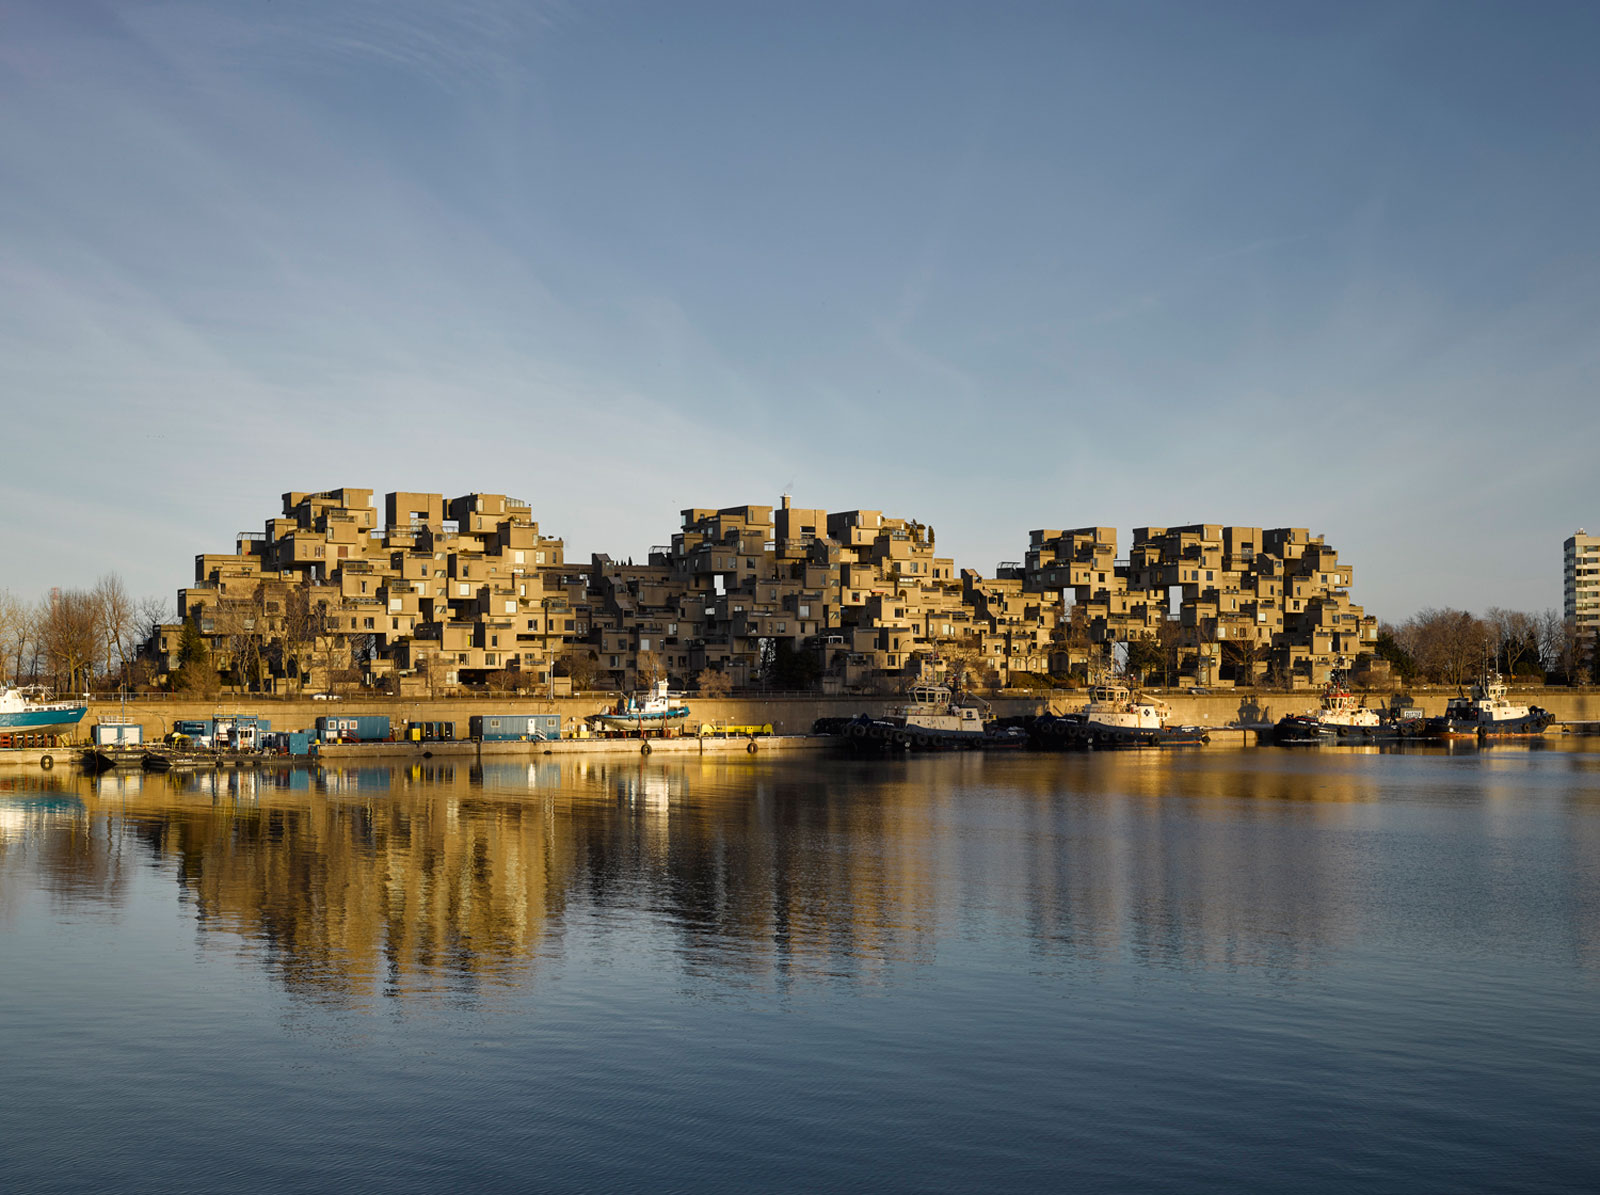 james-brittain-revisited-habitat-67.jpg